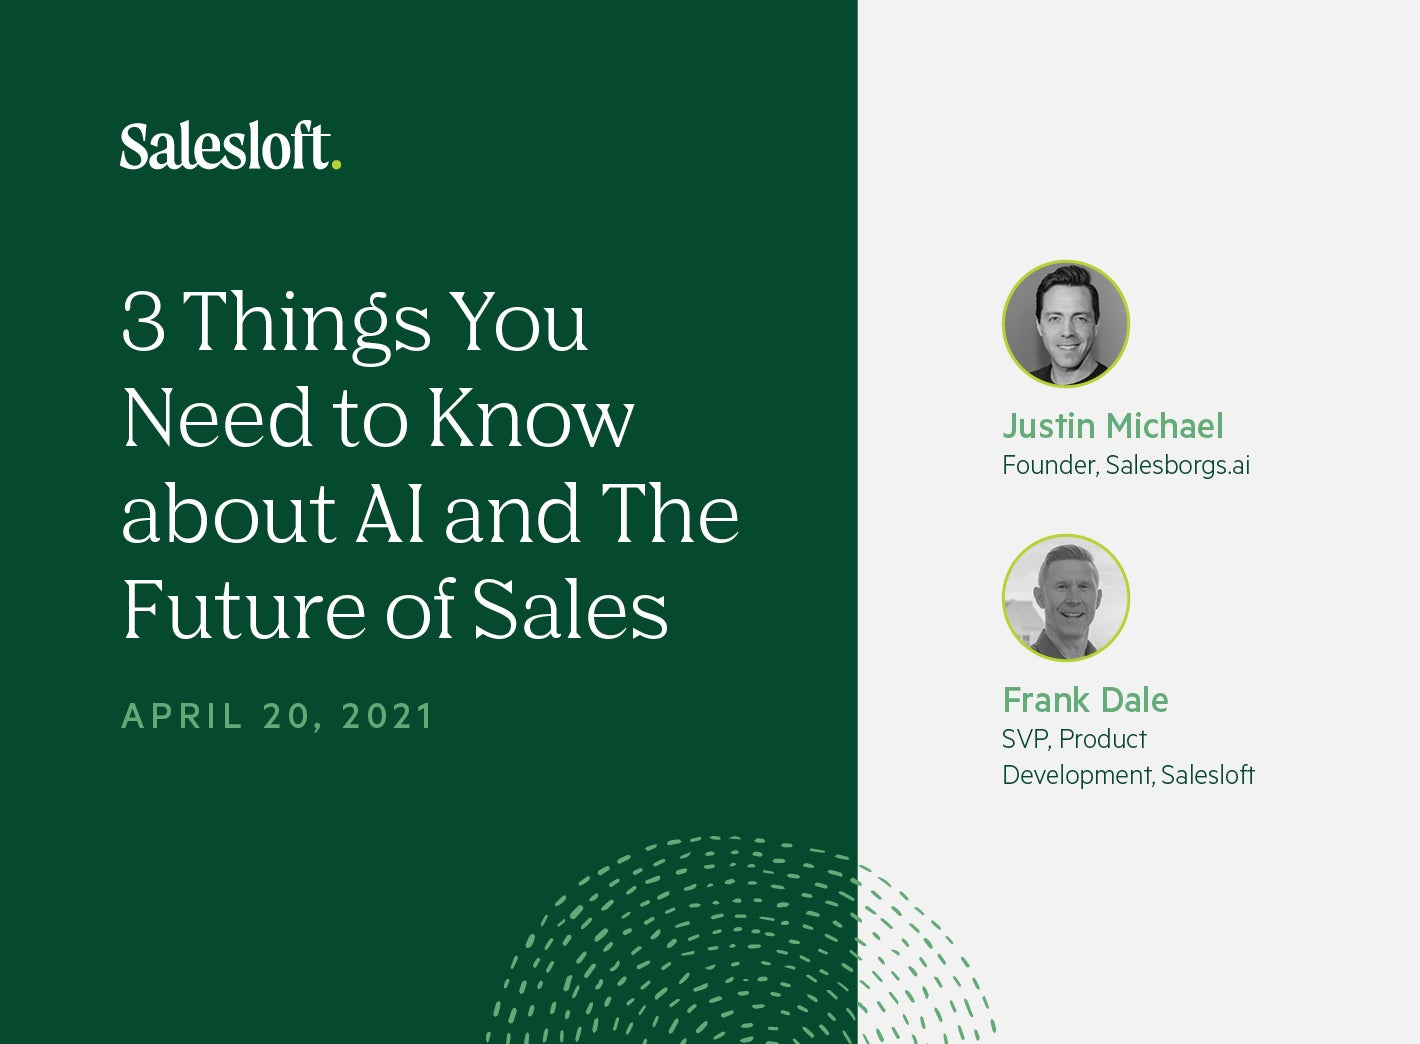 3 Things You Need to Know about AI and the Future of Sales